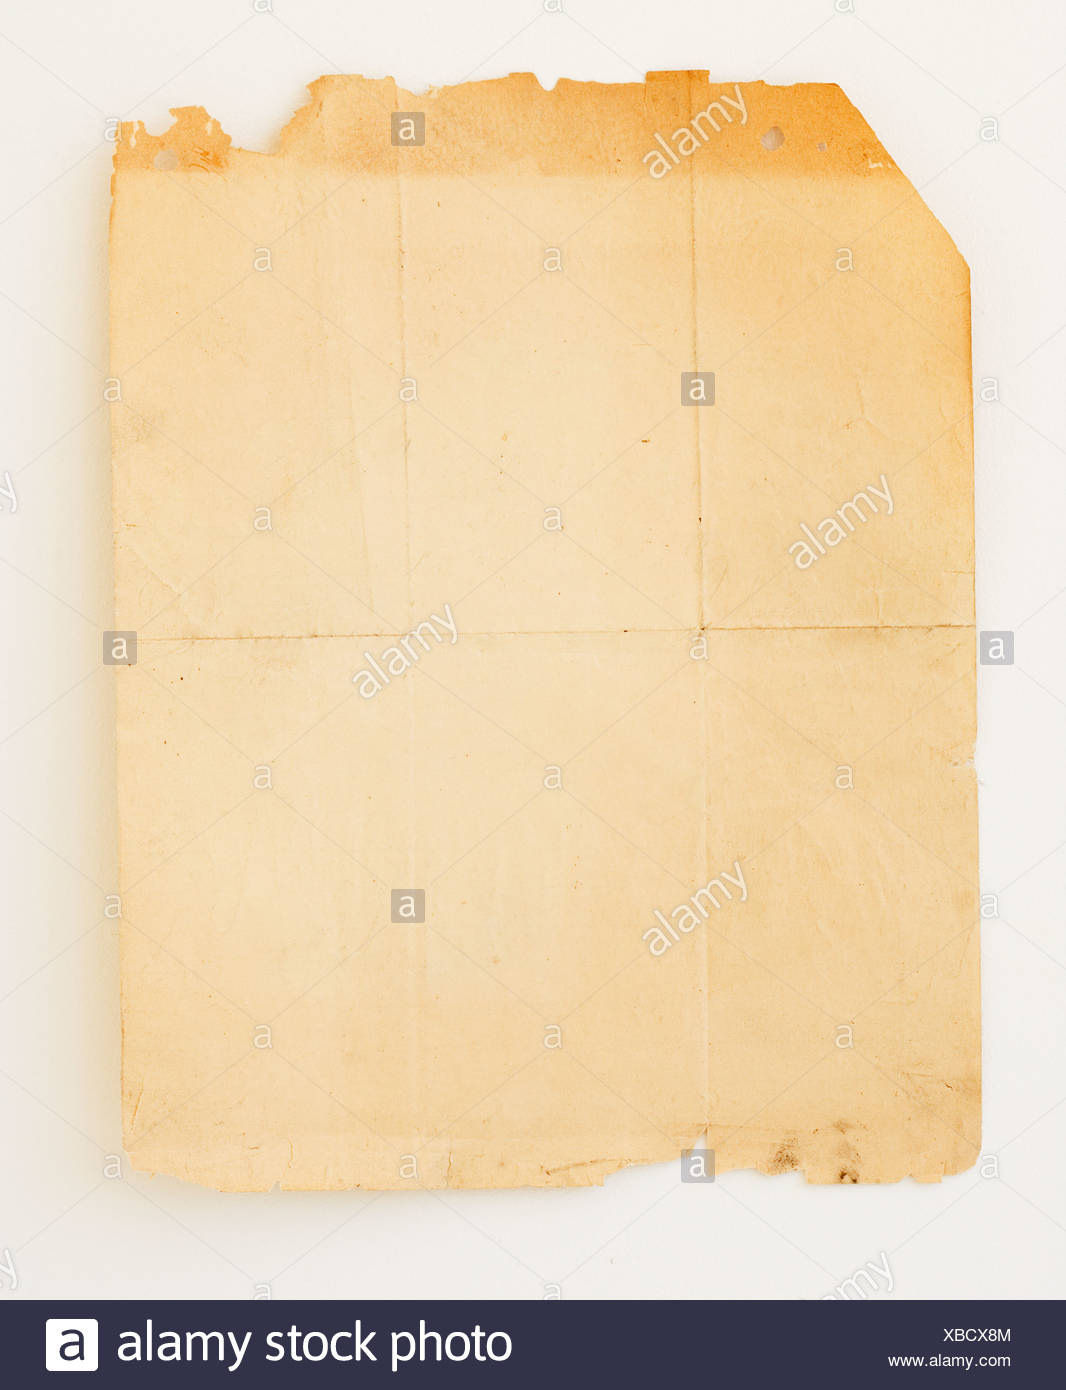 Old piece of paper with crease lines - Stock Image